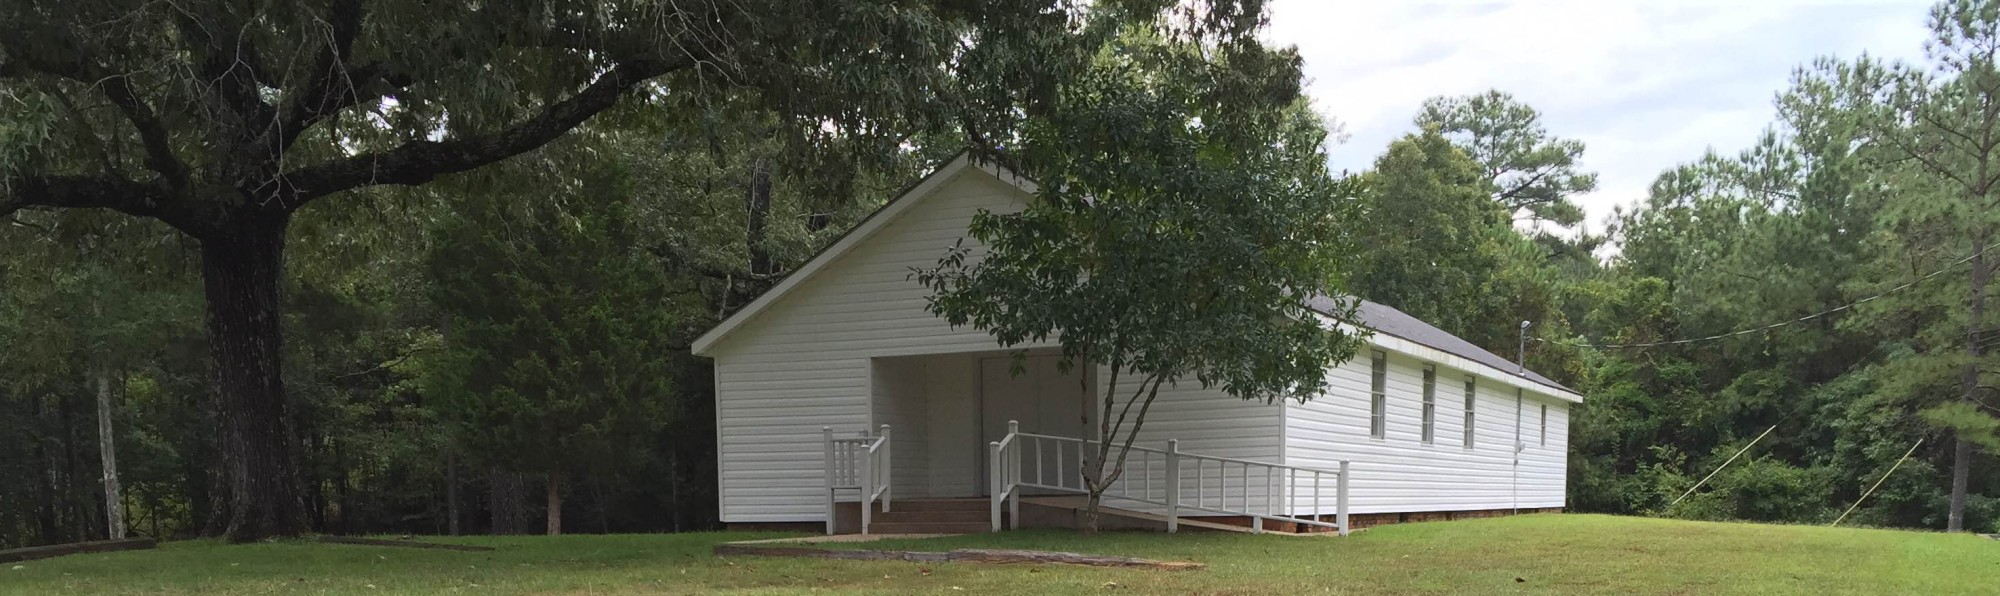 Macedonia Primitive Baptist Church